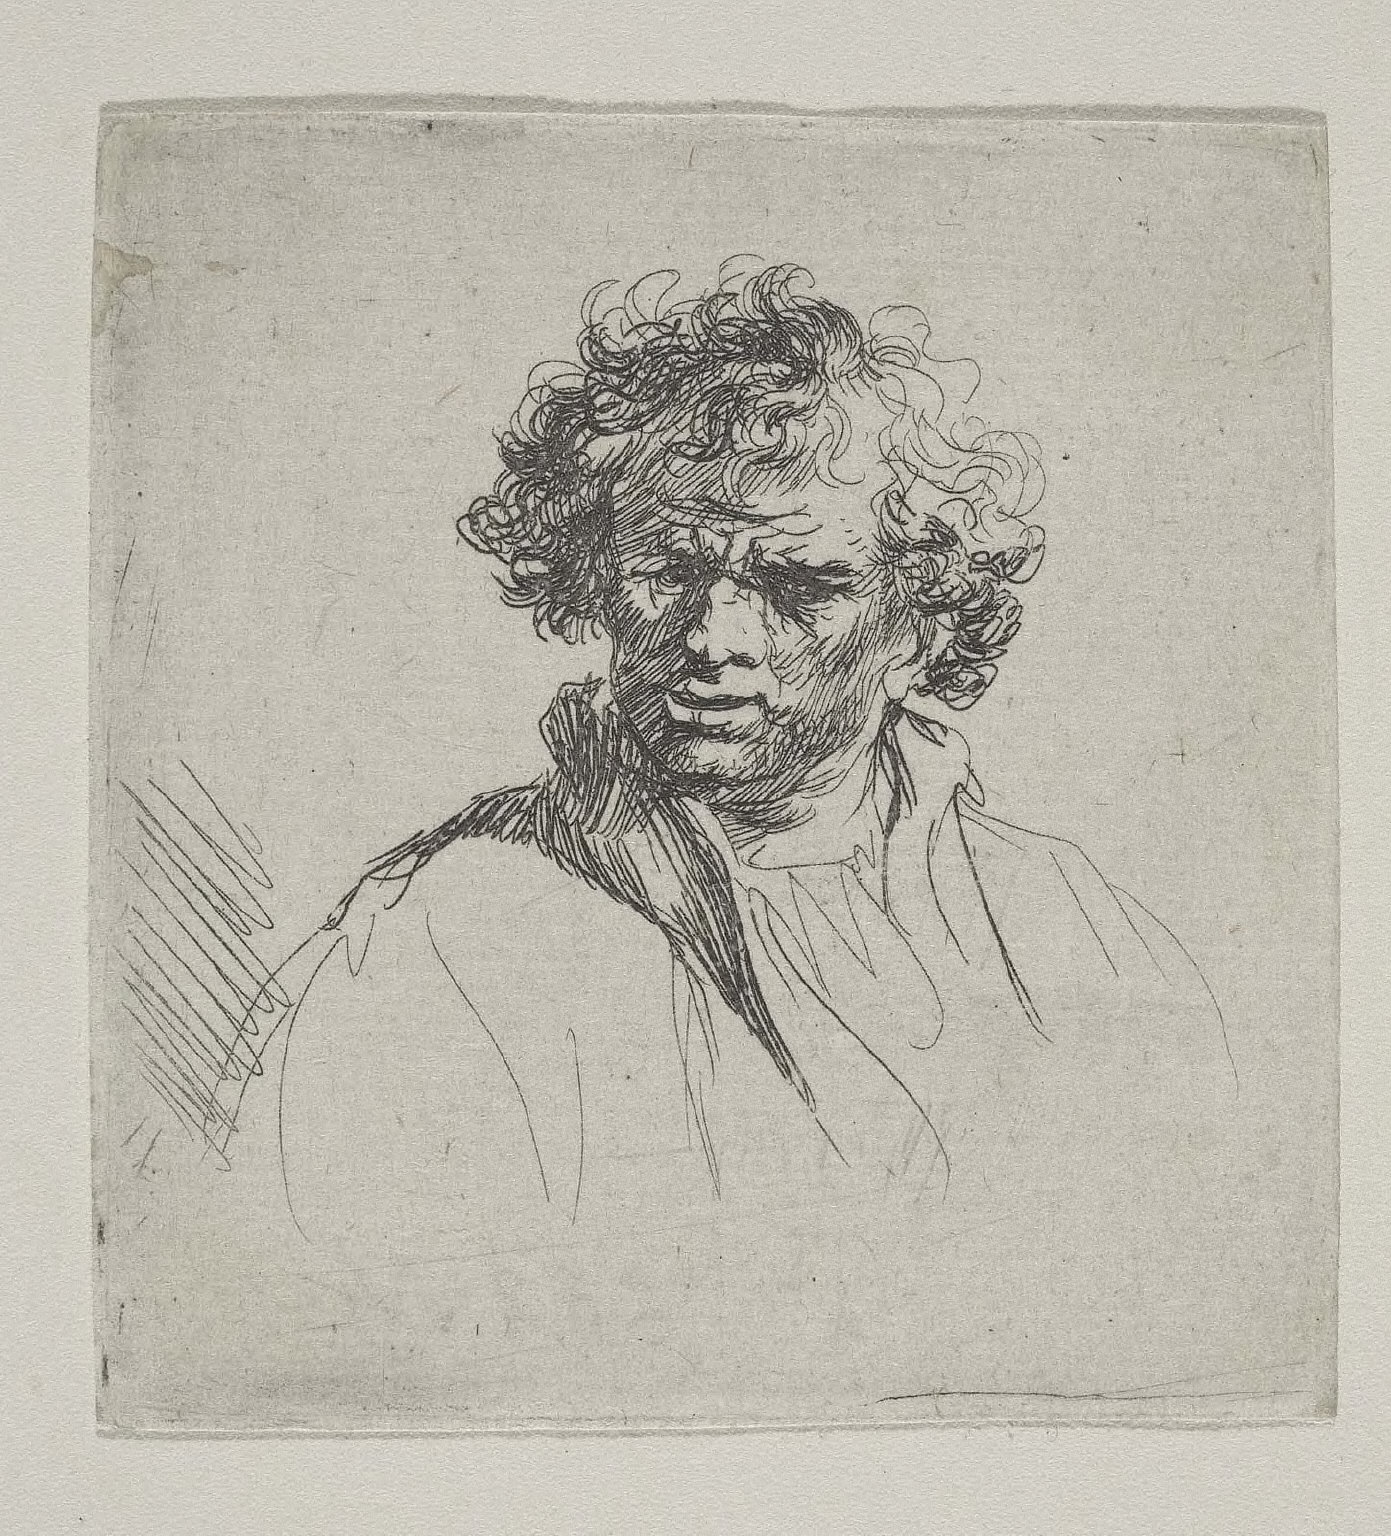 Curly-Headed Man with a Wry Mouth